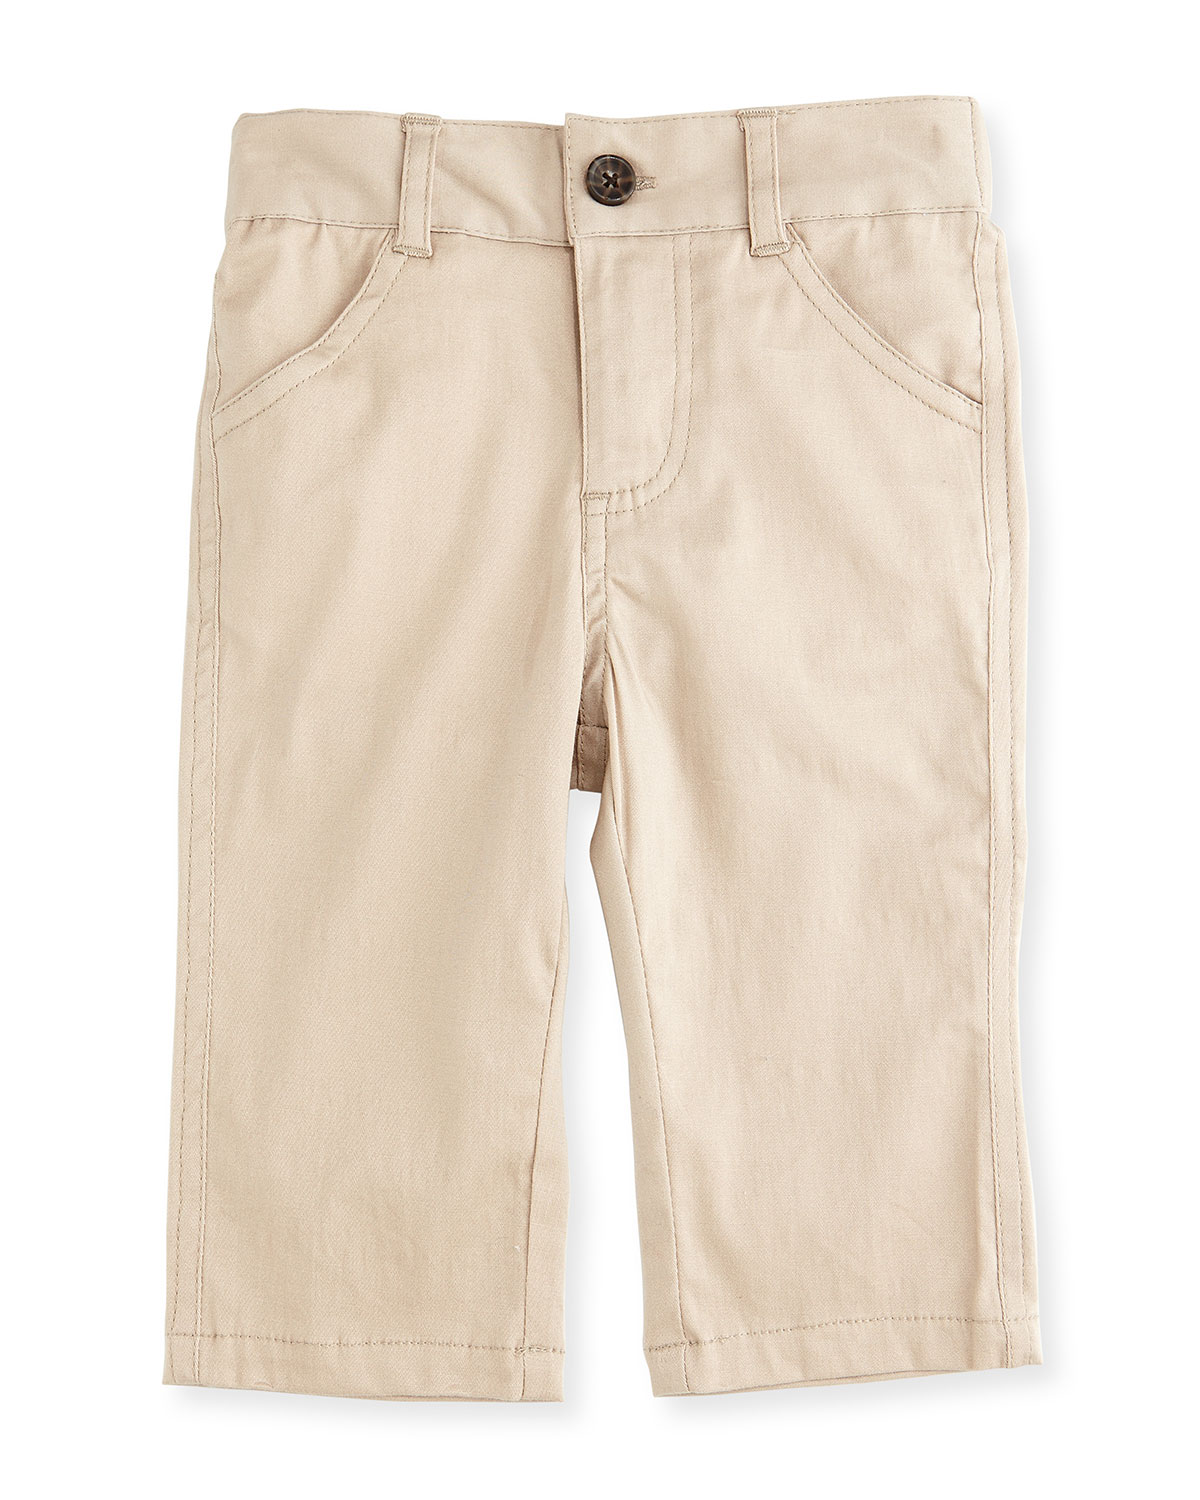 Andy & Evan Twill Straight - Leg Pants, Khaki, Size 2T - 7Y